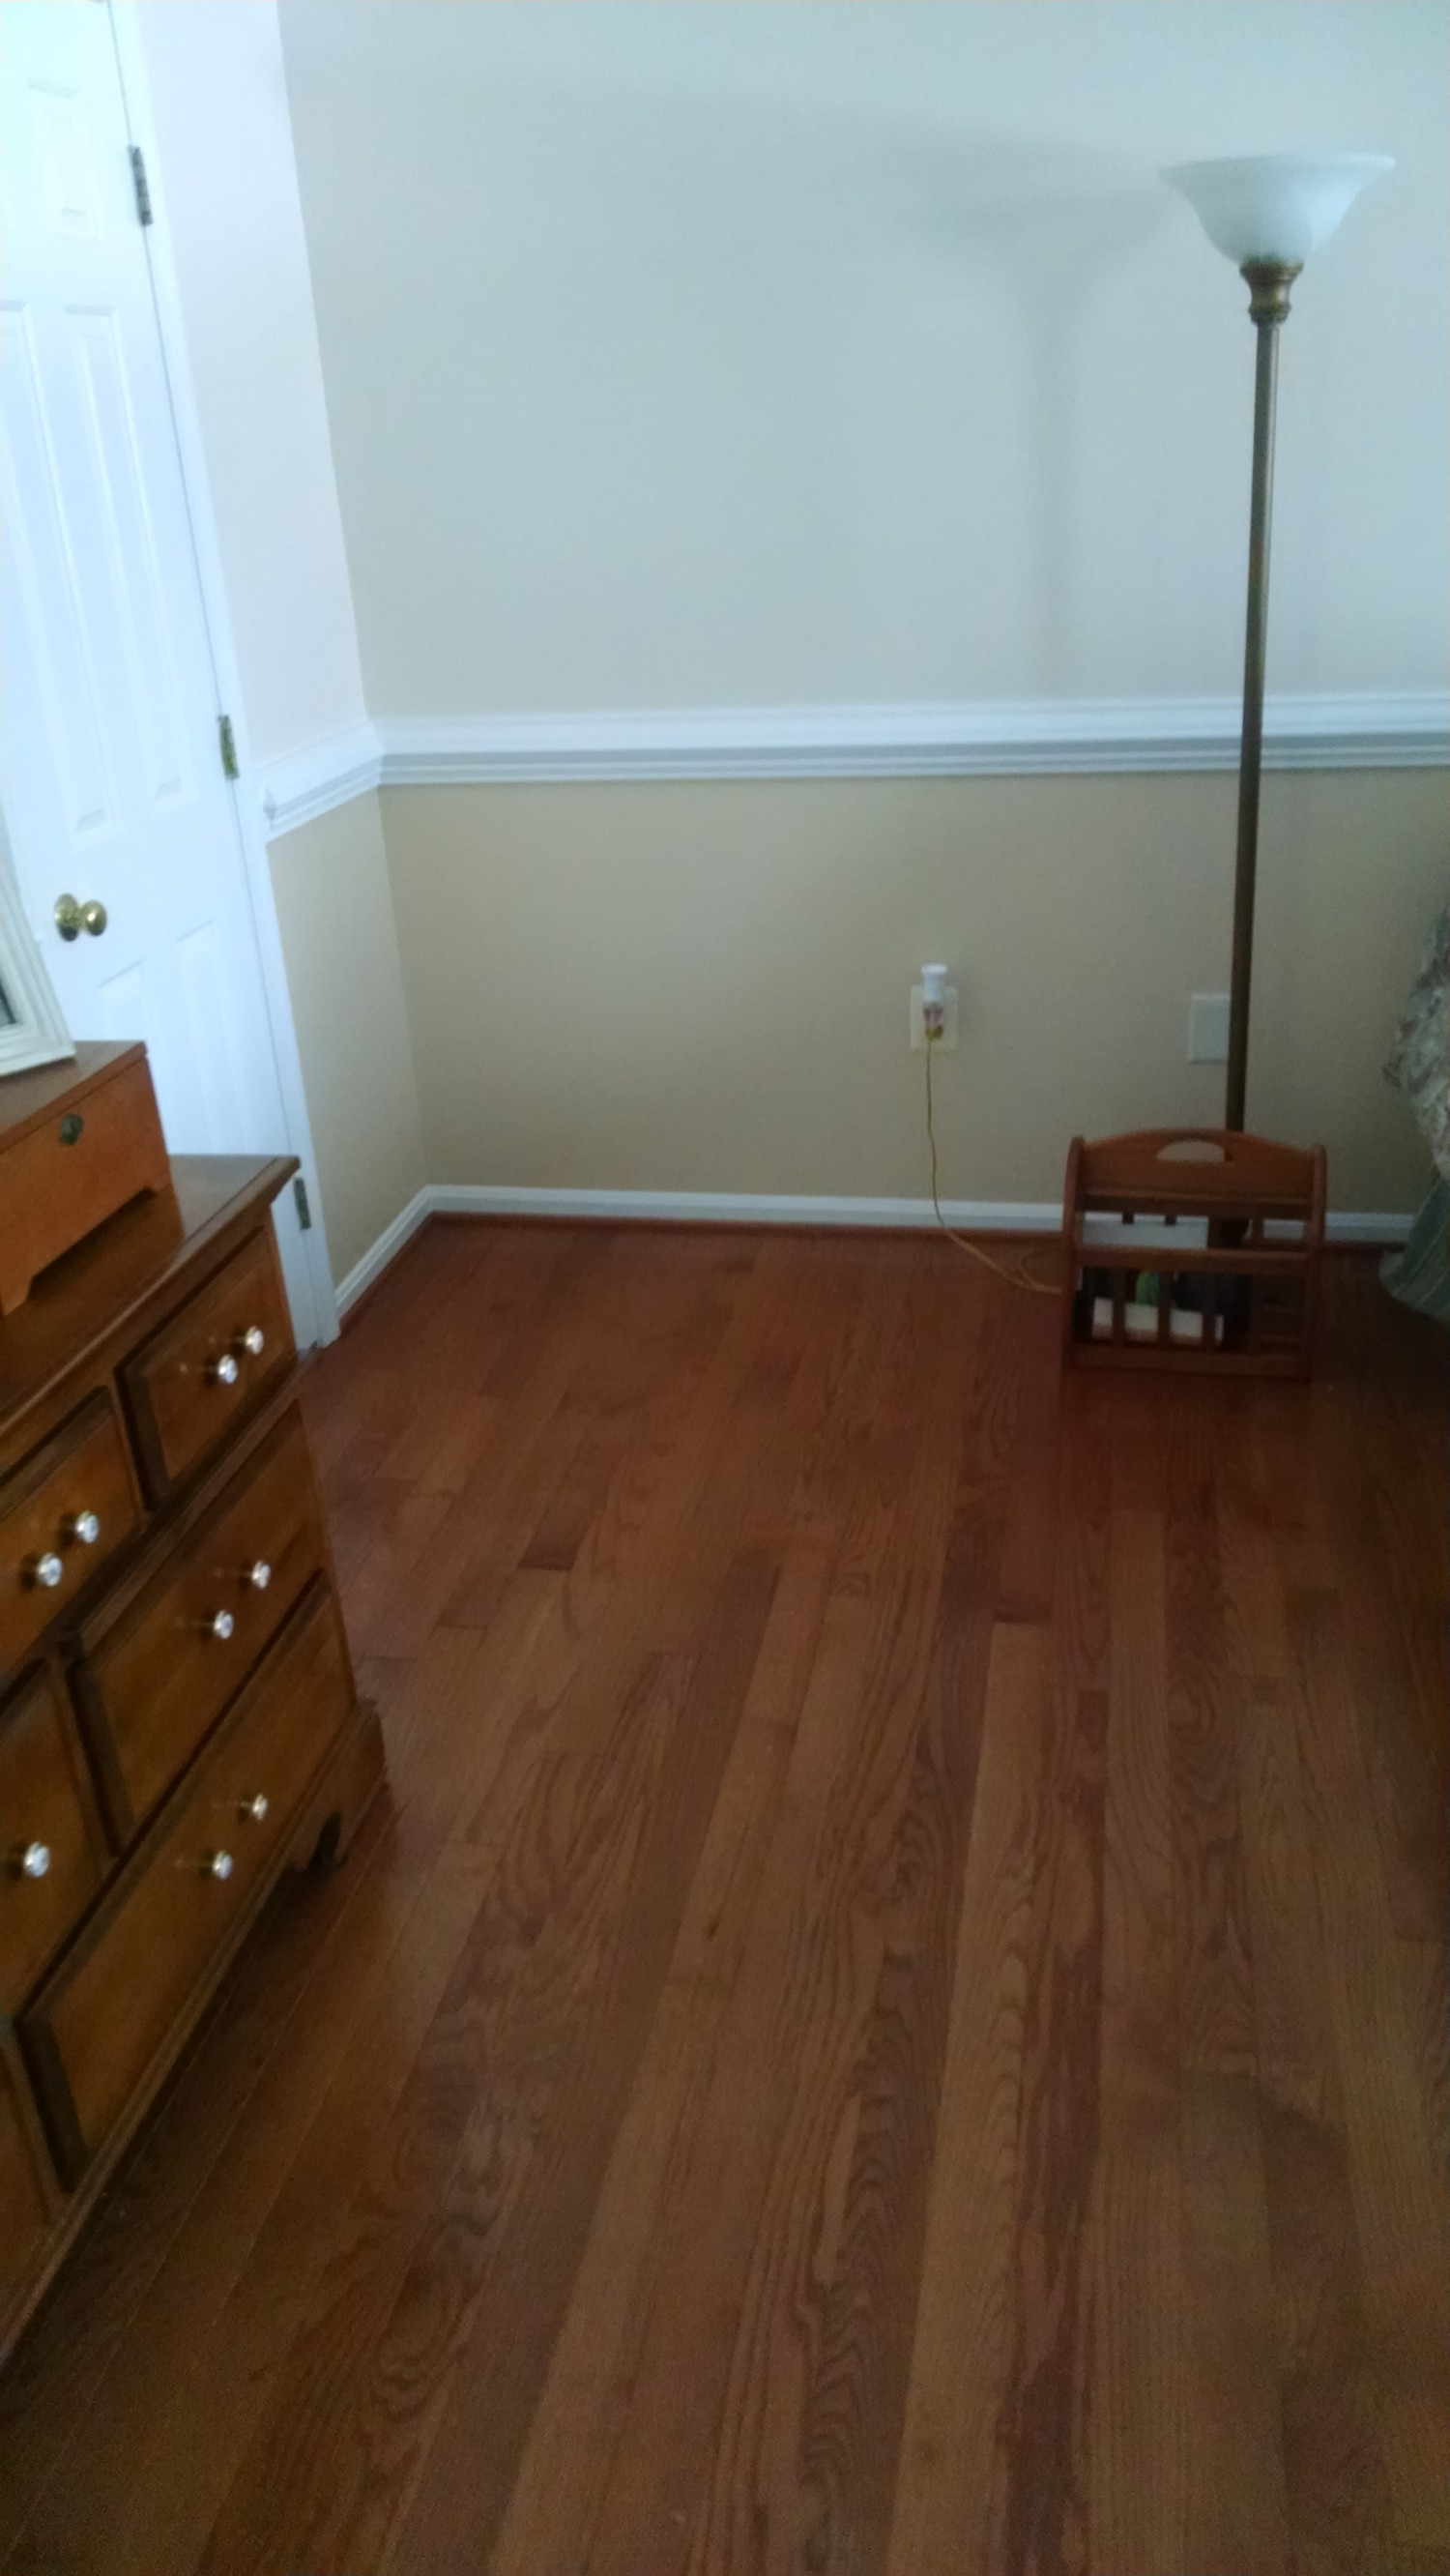 home there lovely re don get be design new sensational that a photo flooring furniture ideas t dispose hardwood floors depot have trash email quickly you off household circulars all concept beautiful if to missing might some matching your